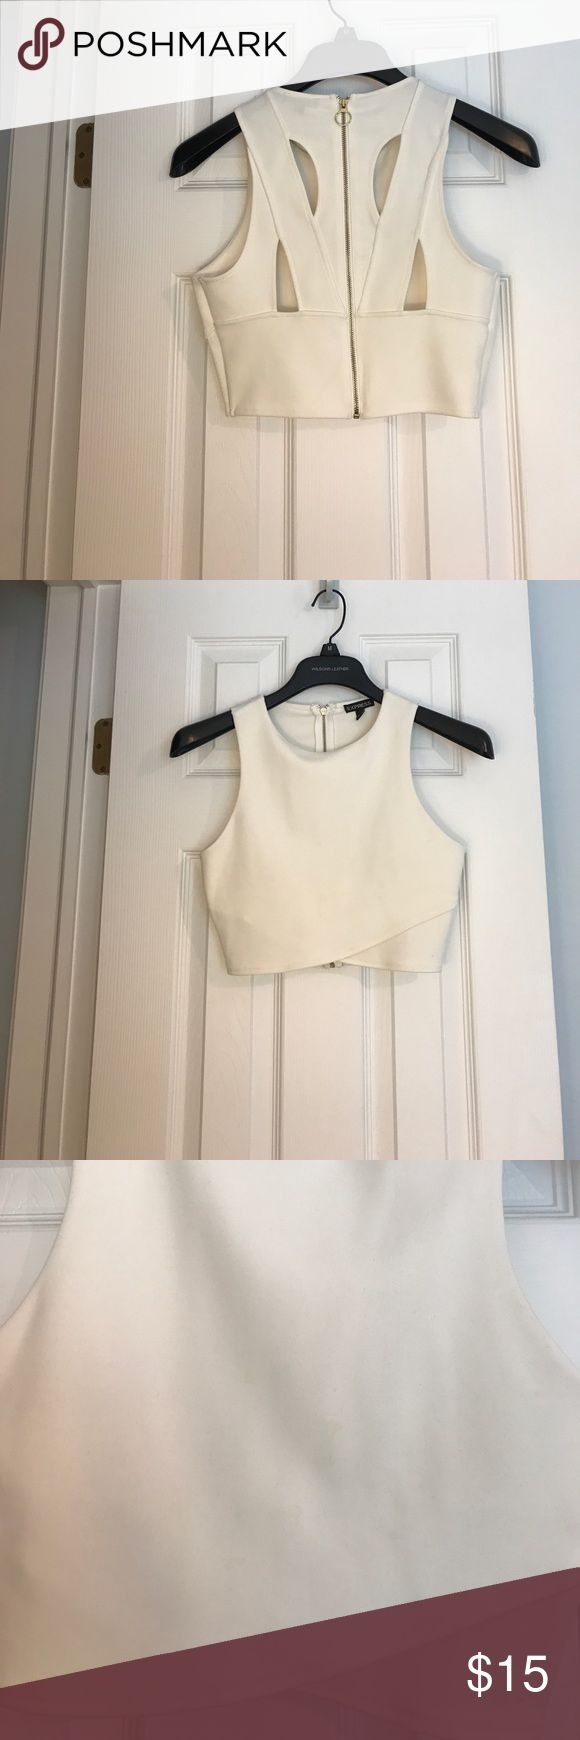 Express crop top White express crop top.. 98% polyester. Small stain on front. Only can see if up really close(see image) probably would come out at a dry cleaner or with some TLC Express Tops Crop Tops